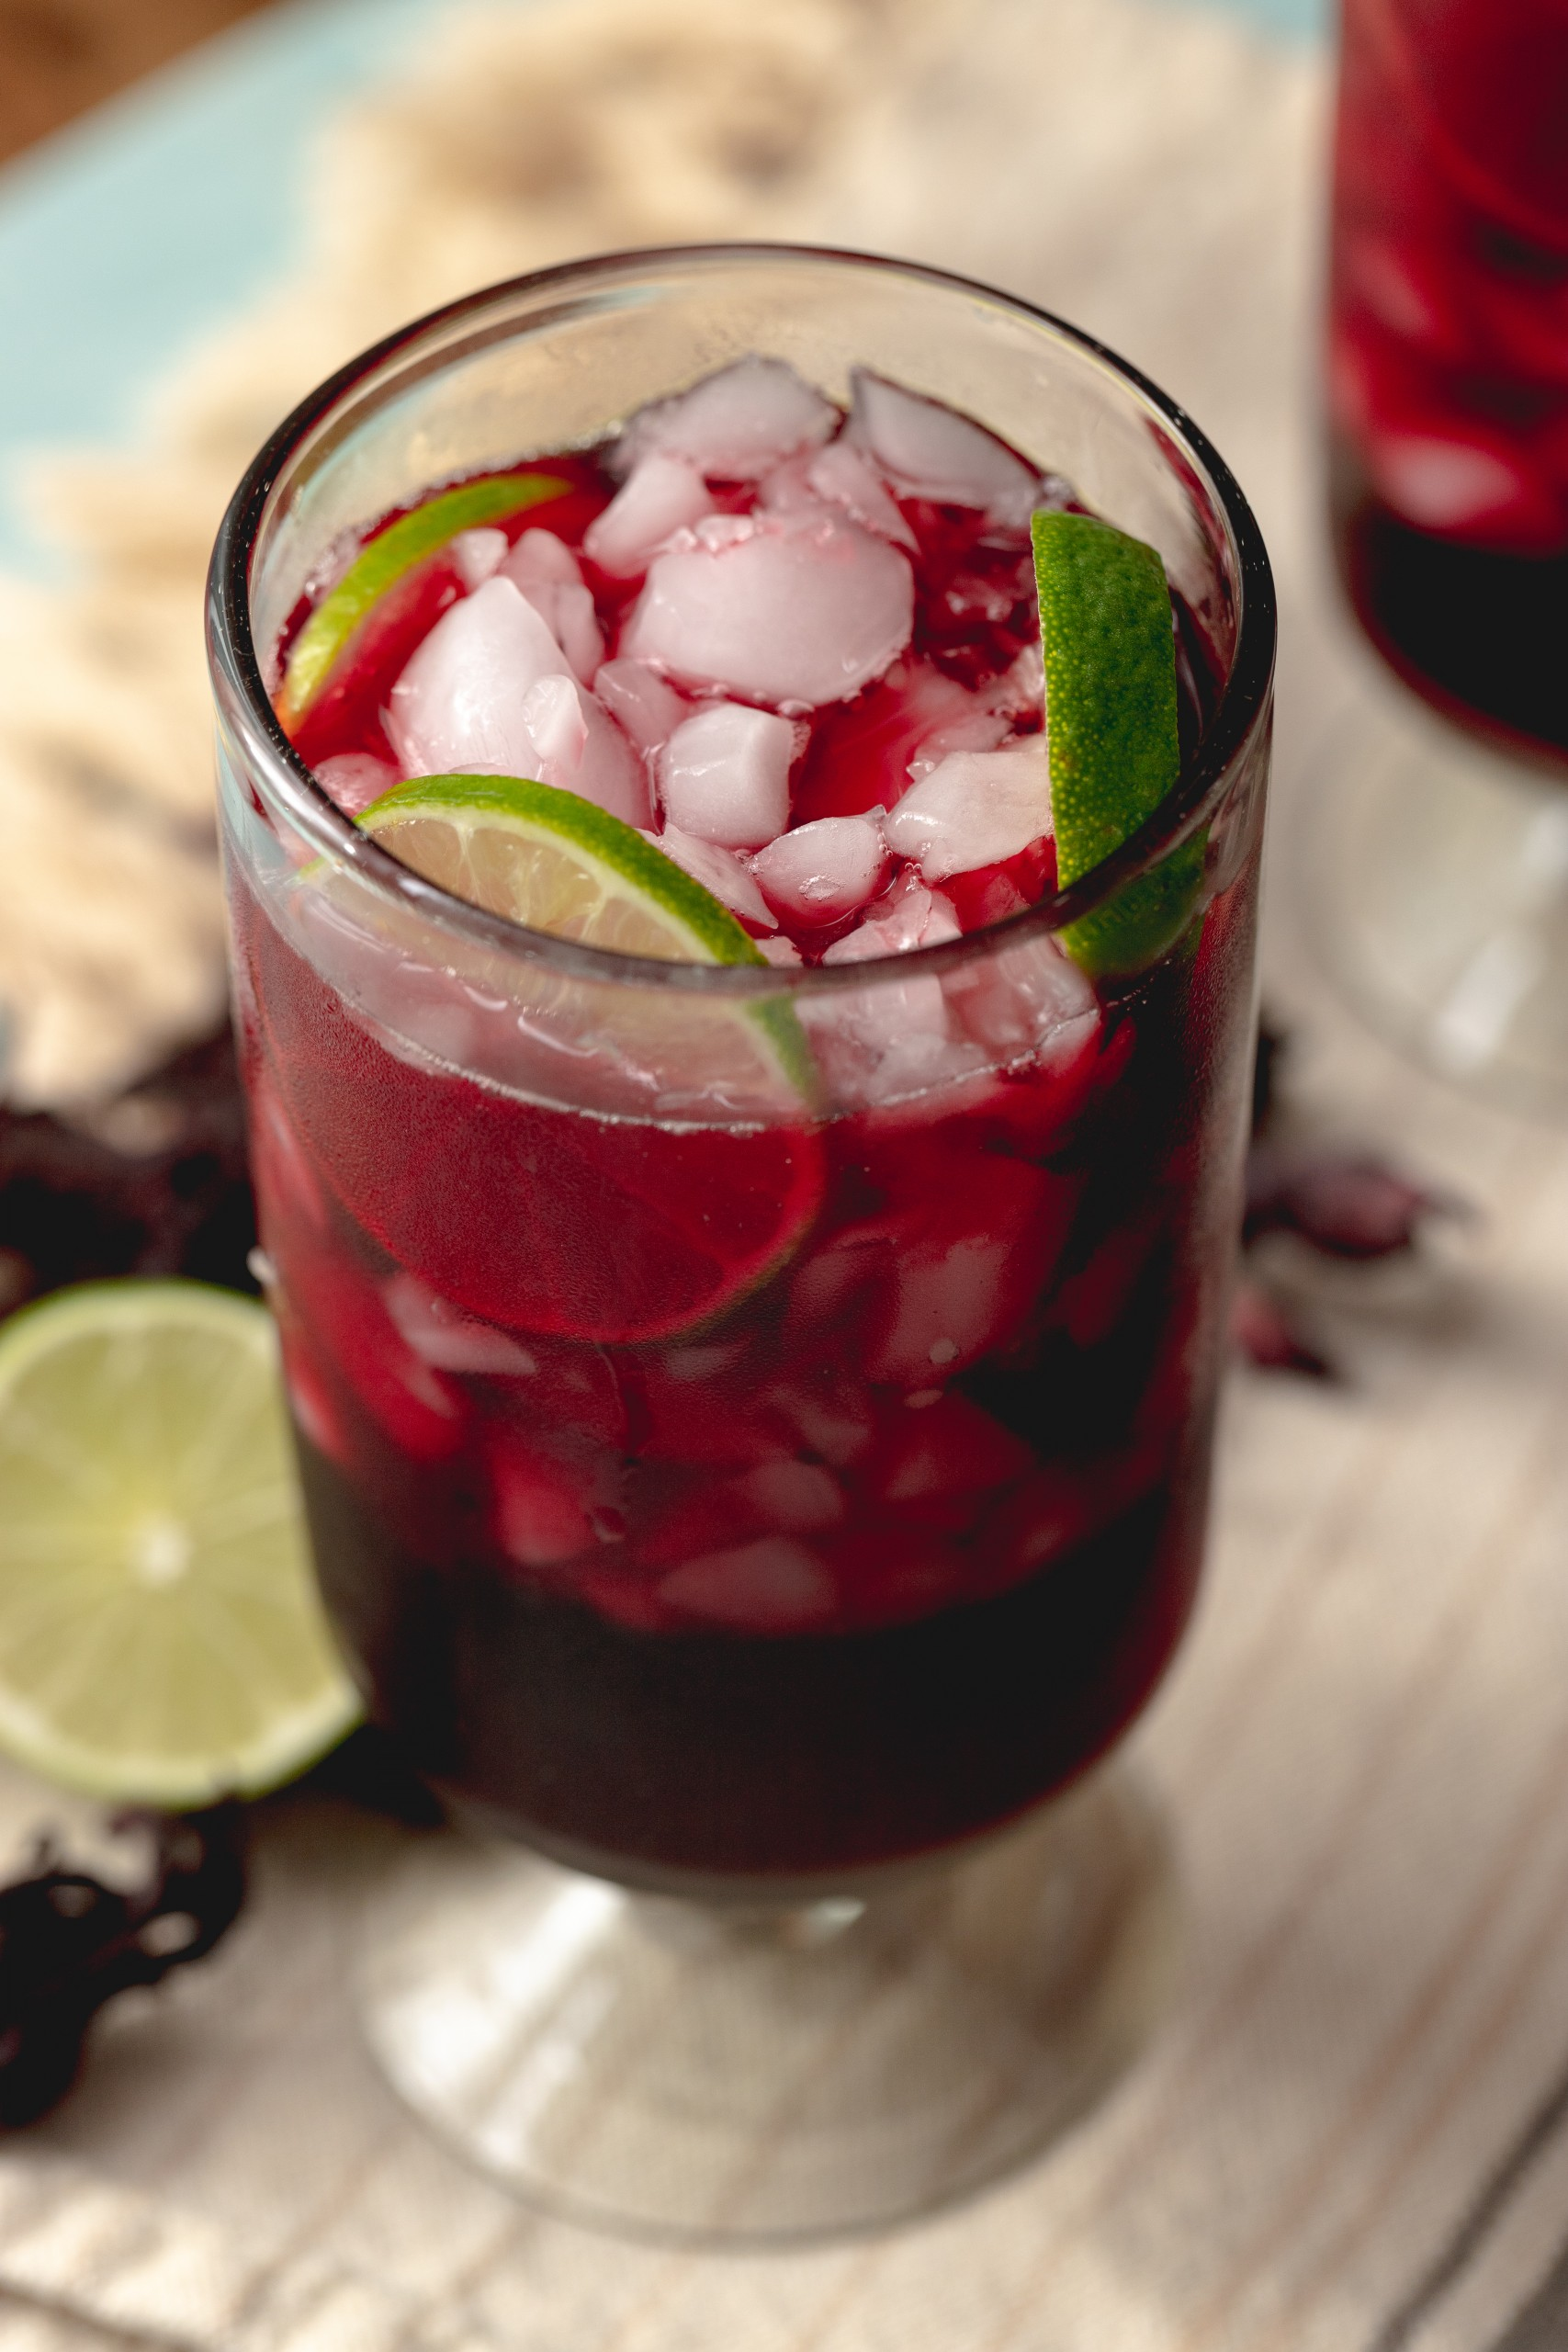 limeade made with dried hibiscus flowers